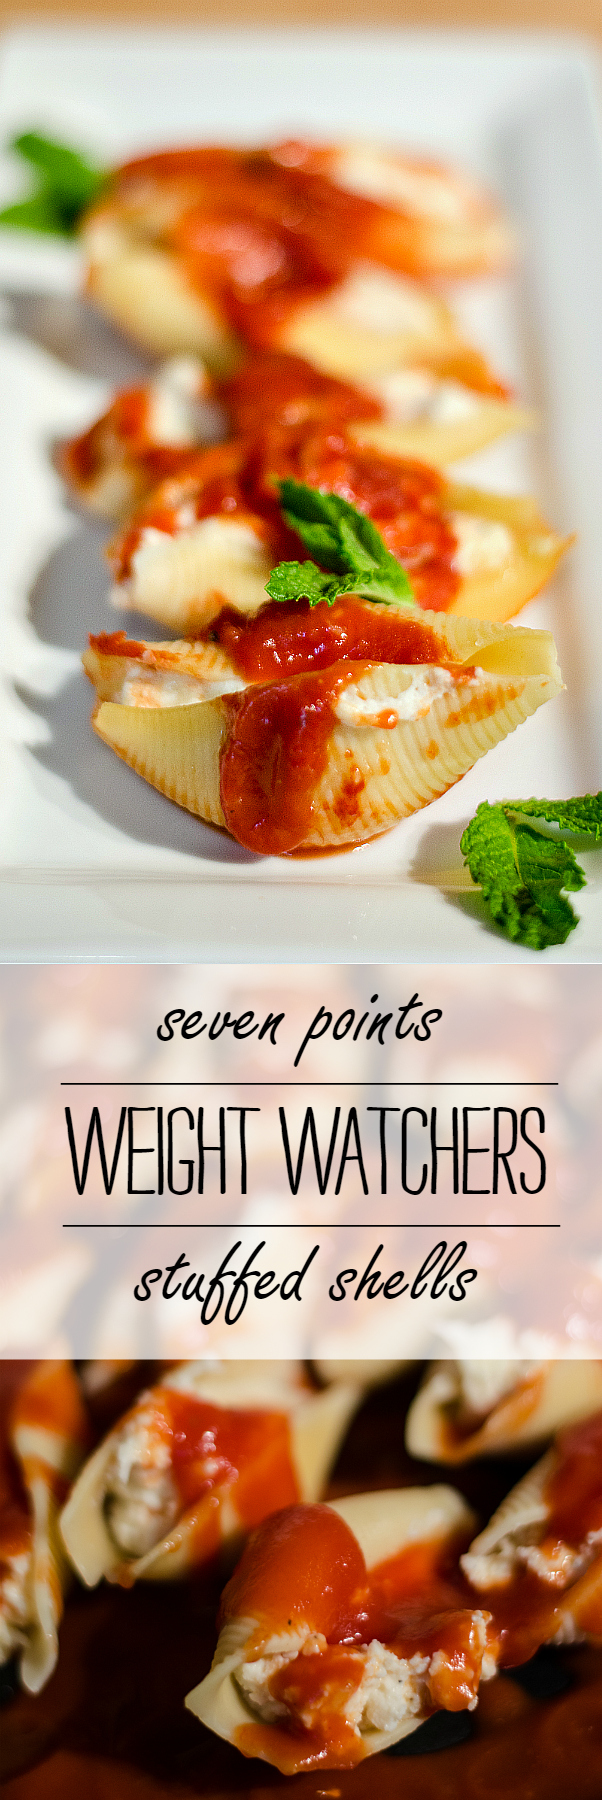 Weight Watchers Dinner Recipe Ideas